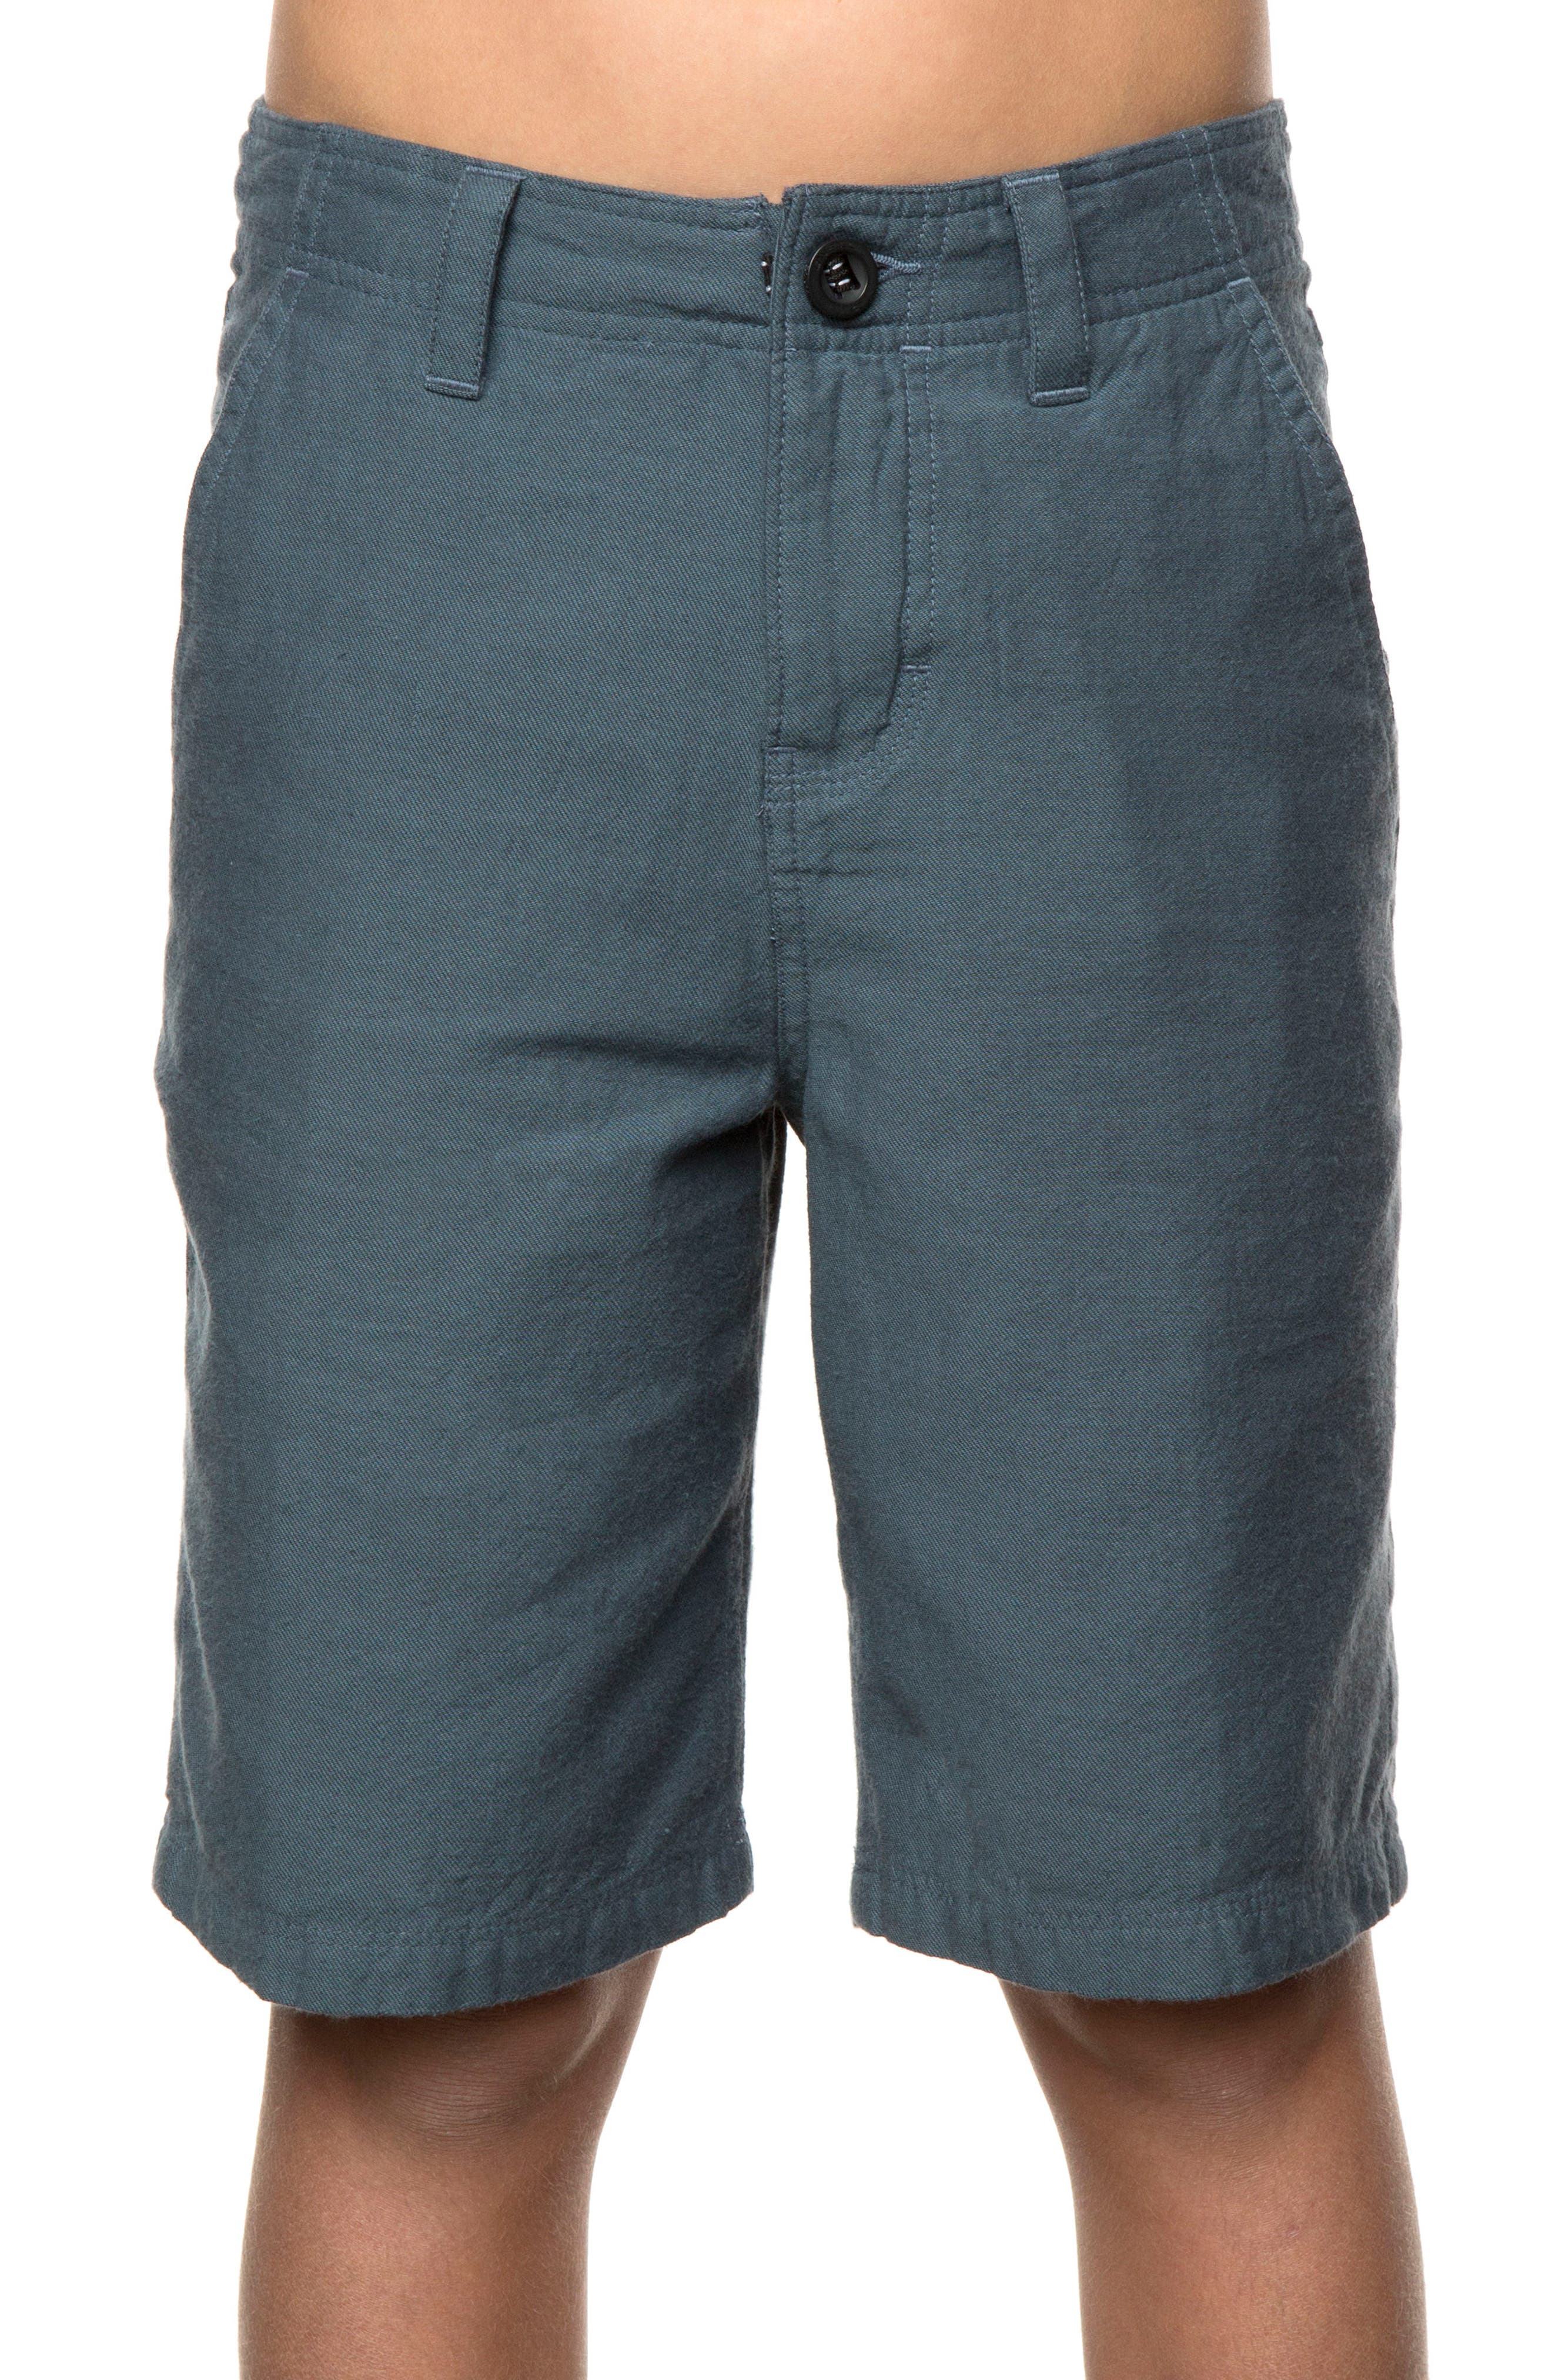 Scranton Chino Shorts,                             Alternate thumbnail 5, color,                             028